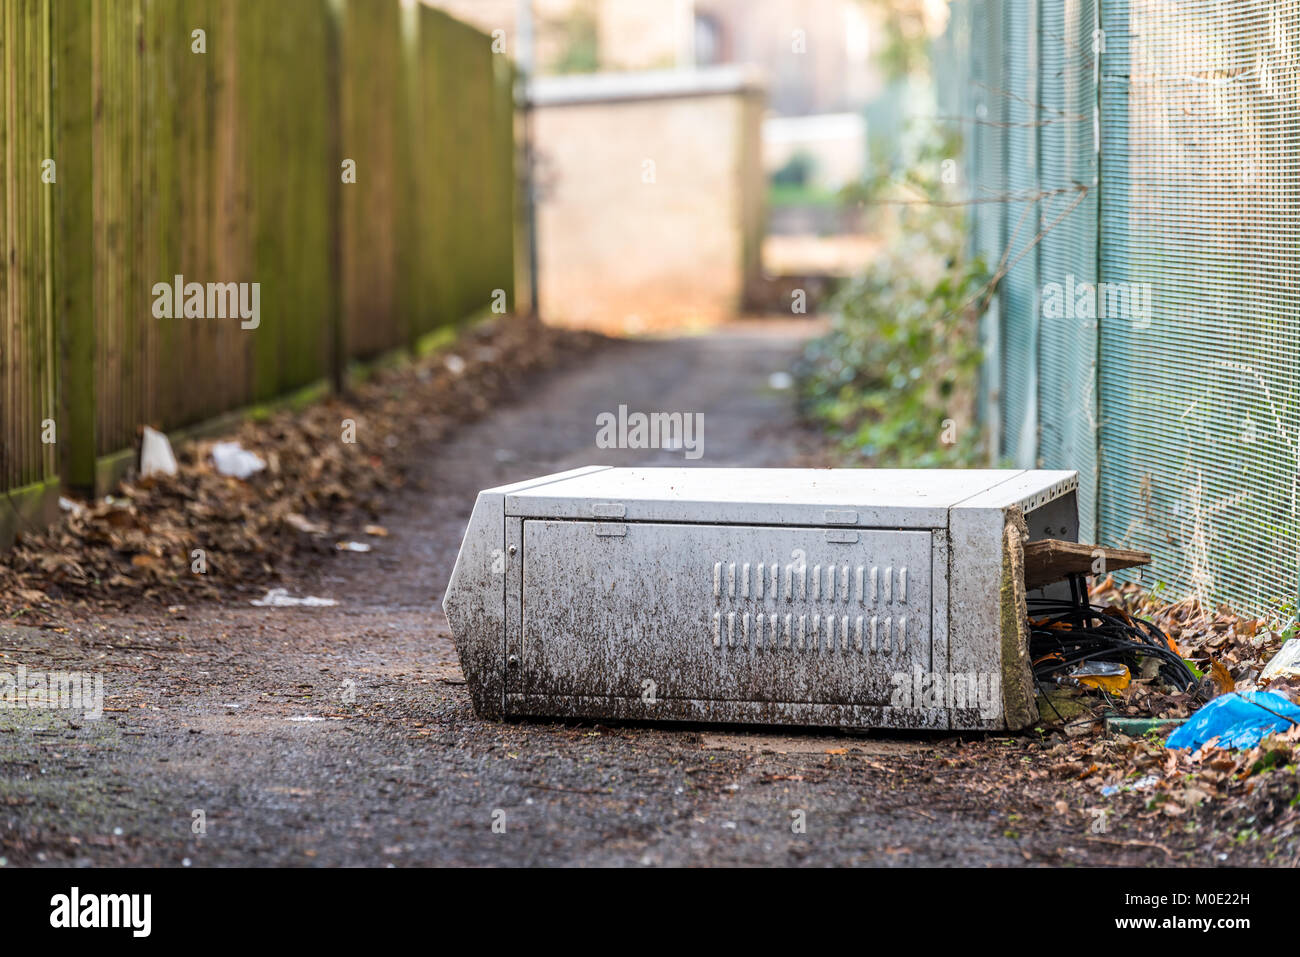 Fallen broken electrical box outdoors on footpath with cable wires exposed. - Stock Image